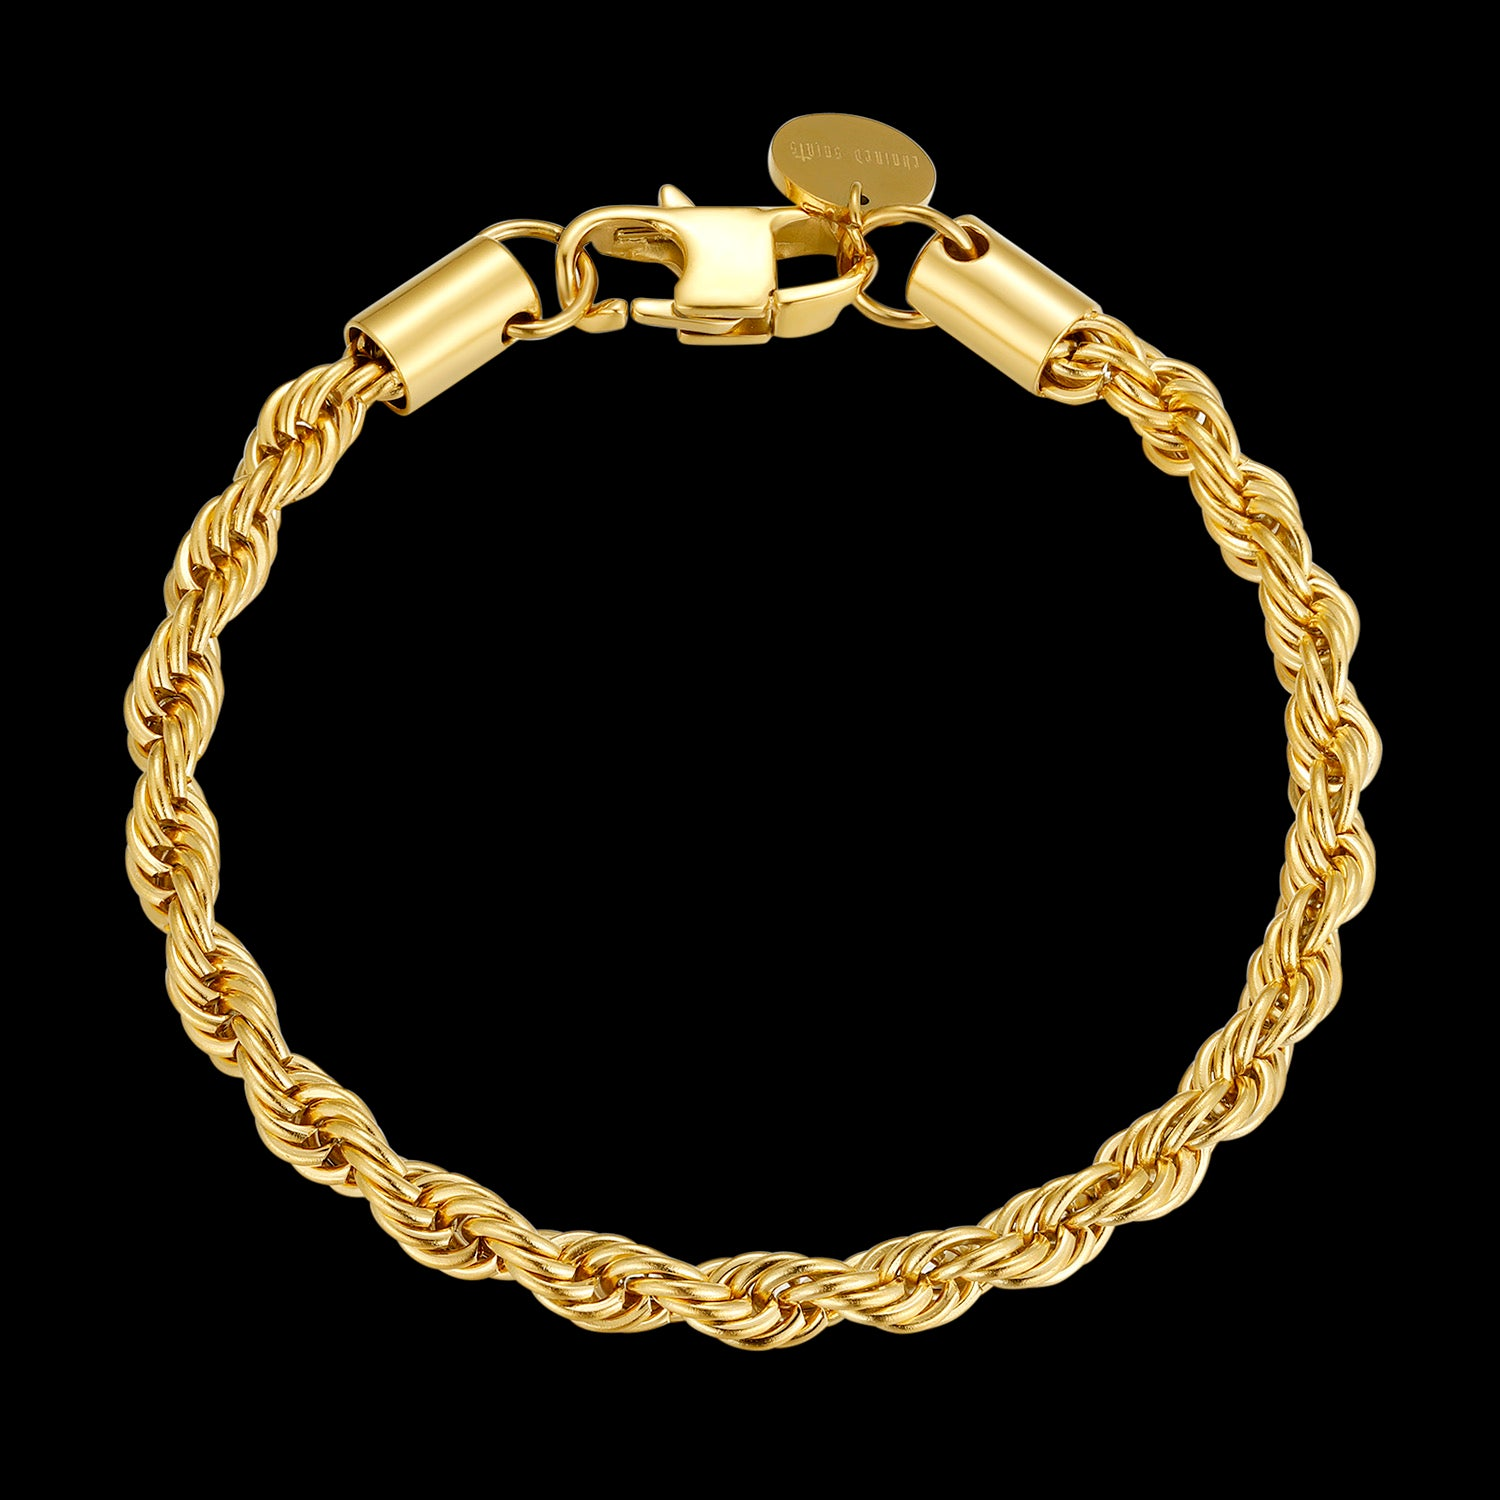 CS // 5mm Gold Rope Chain Bracelet